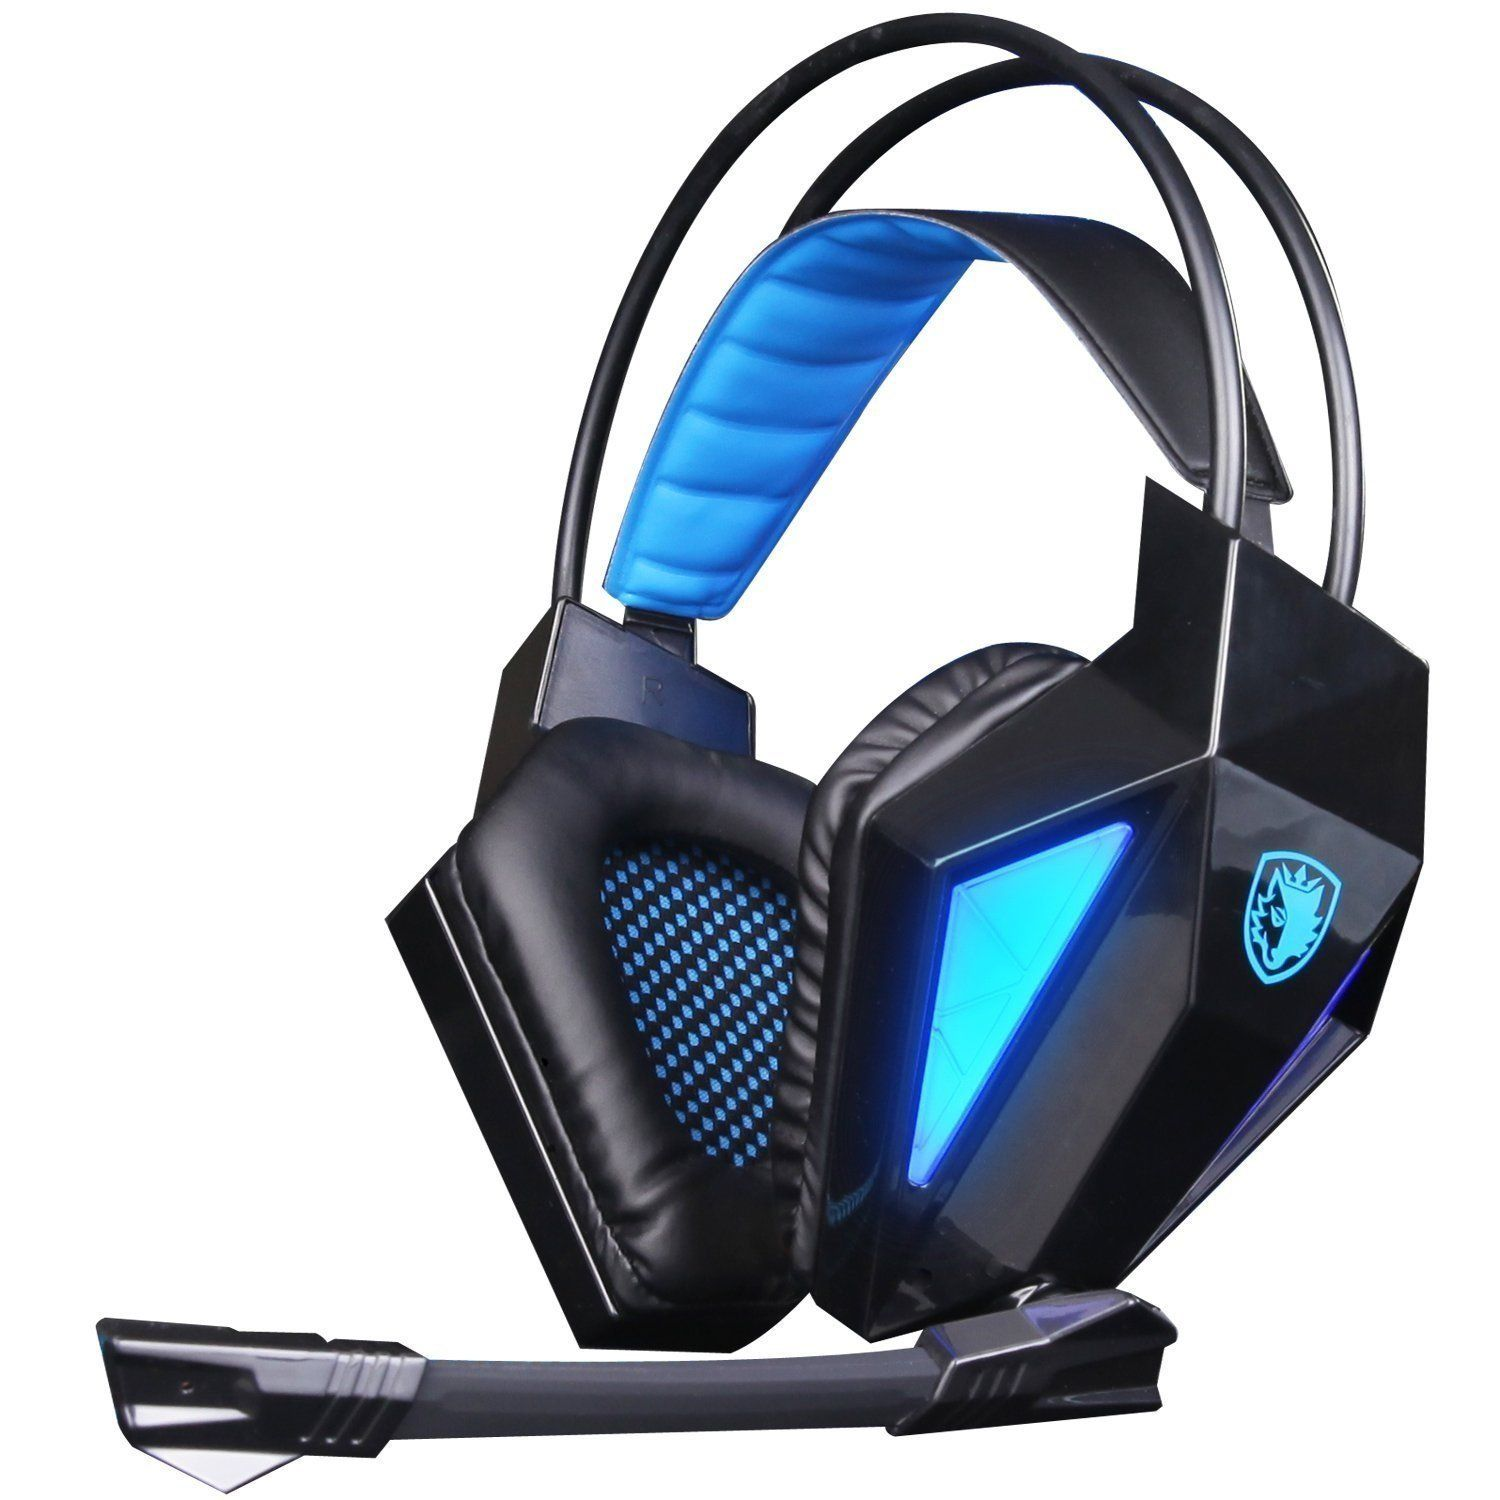 Best 7.1 Surround Sound Gaming Headset PS4 Best Reviews